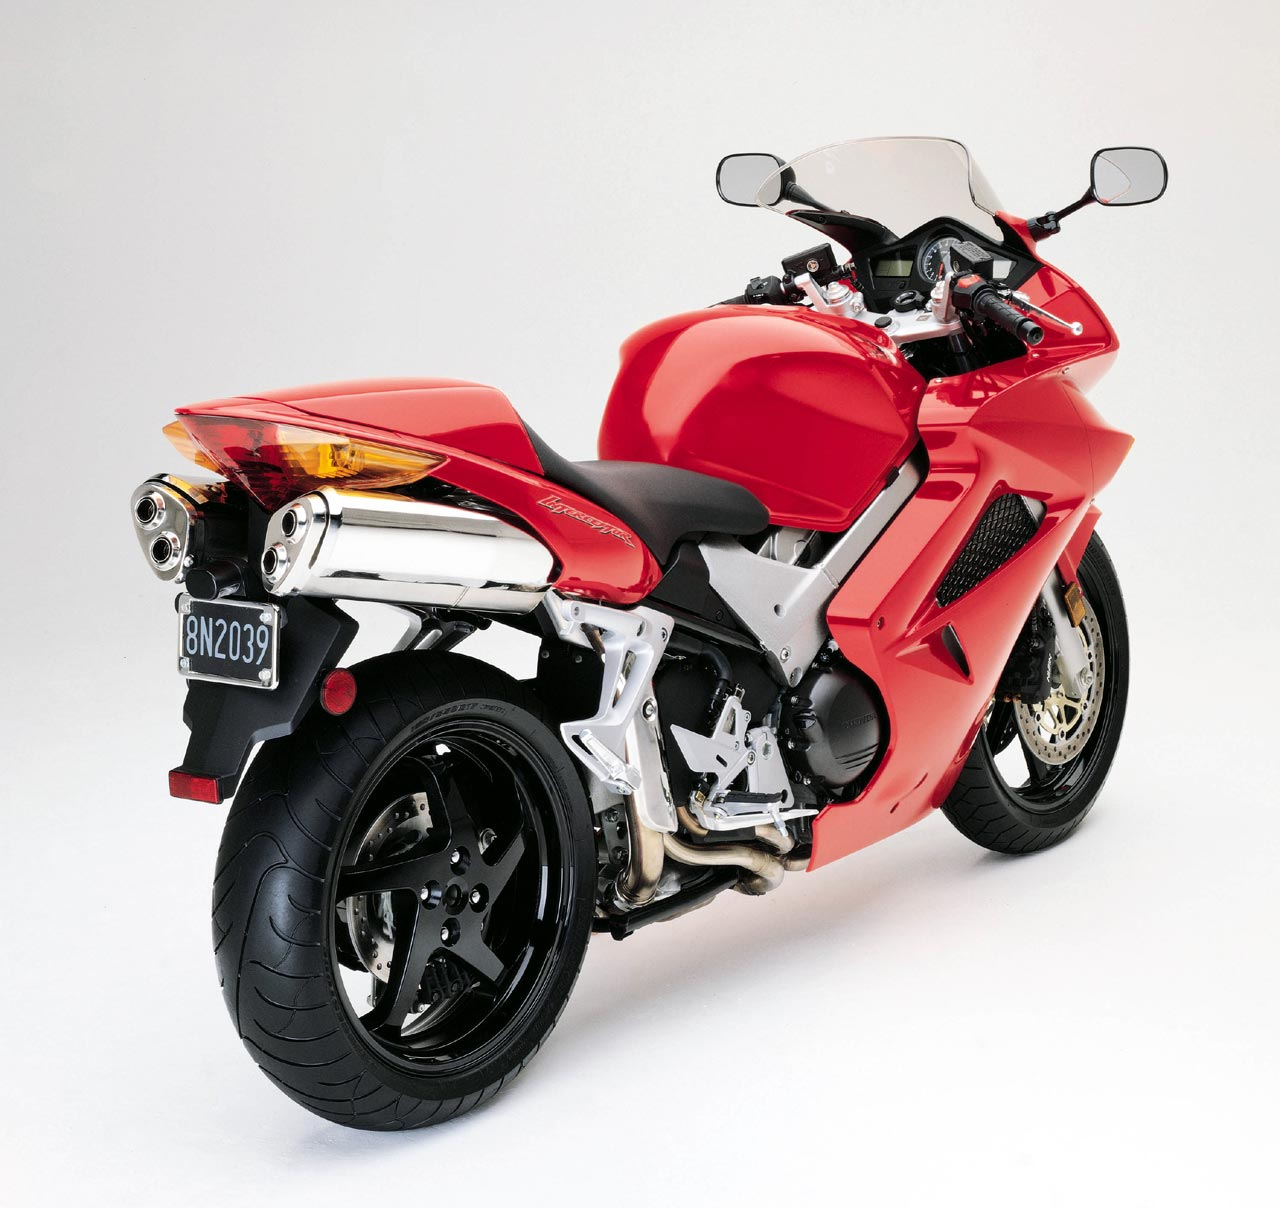 2010 Honda VFR800 Interceptor ABS #2